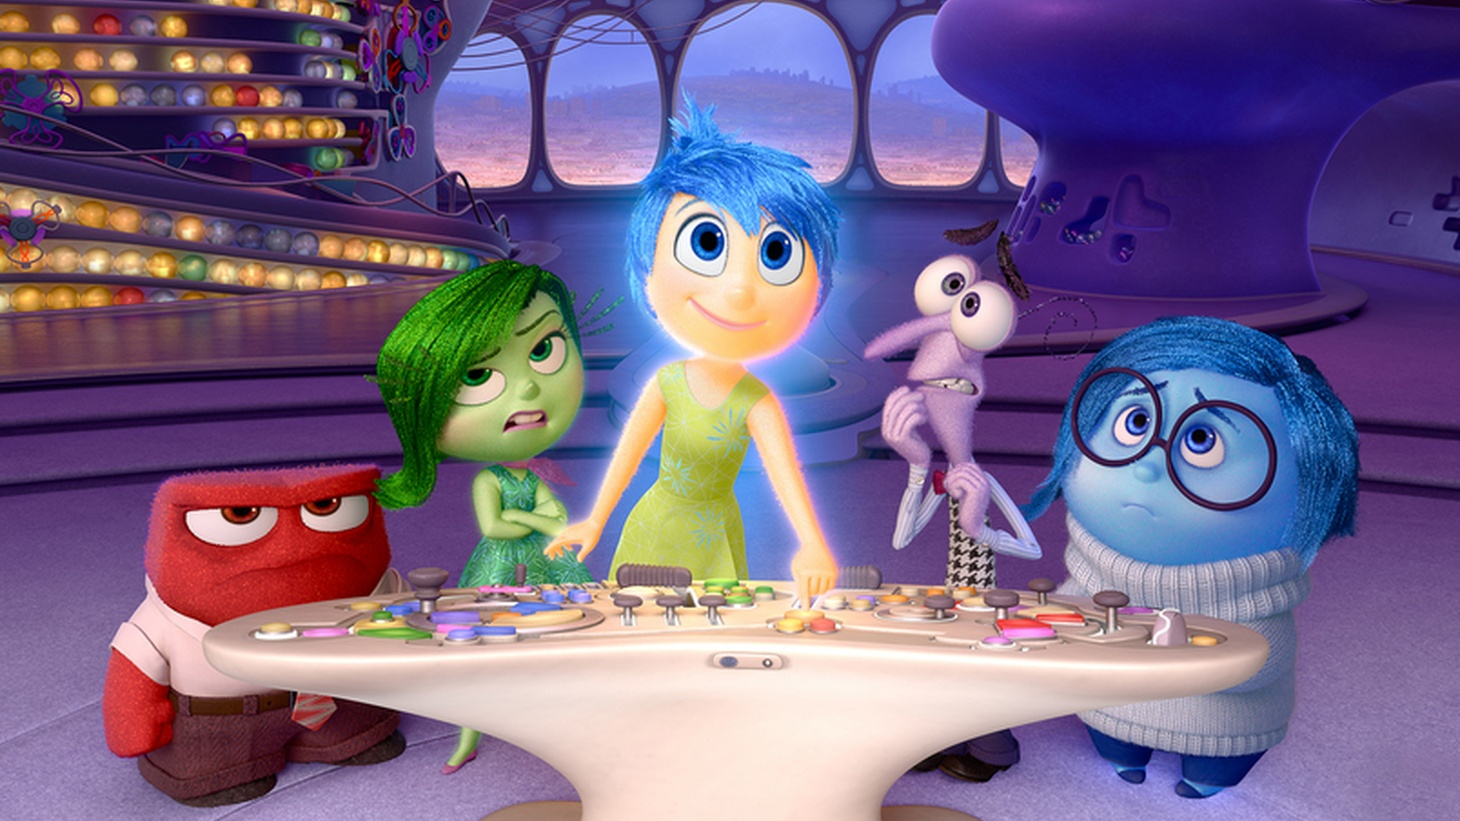 Actors use their faces, voices and bodies to convey what their characters are feeling, but the new Pixar film Inside Out takes a more direct approach.